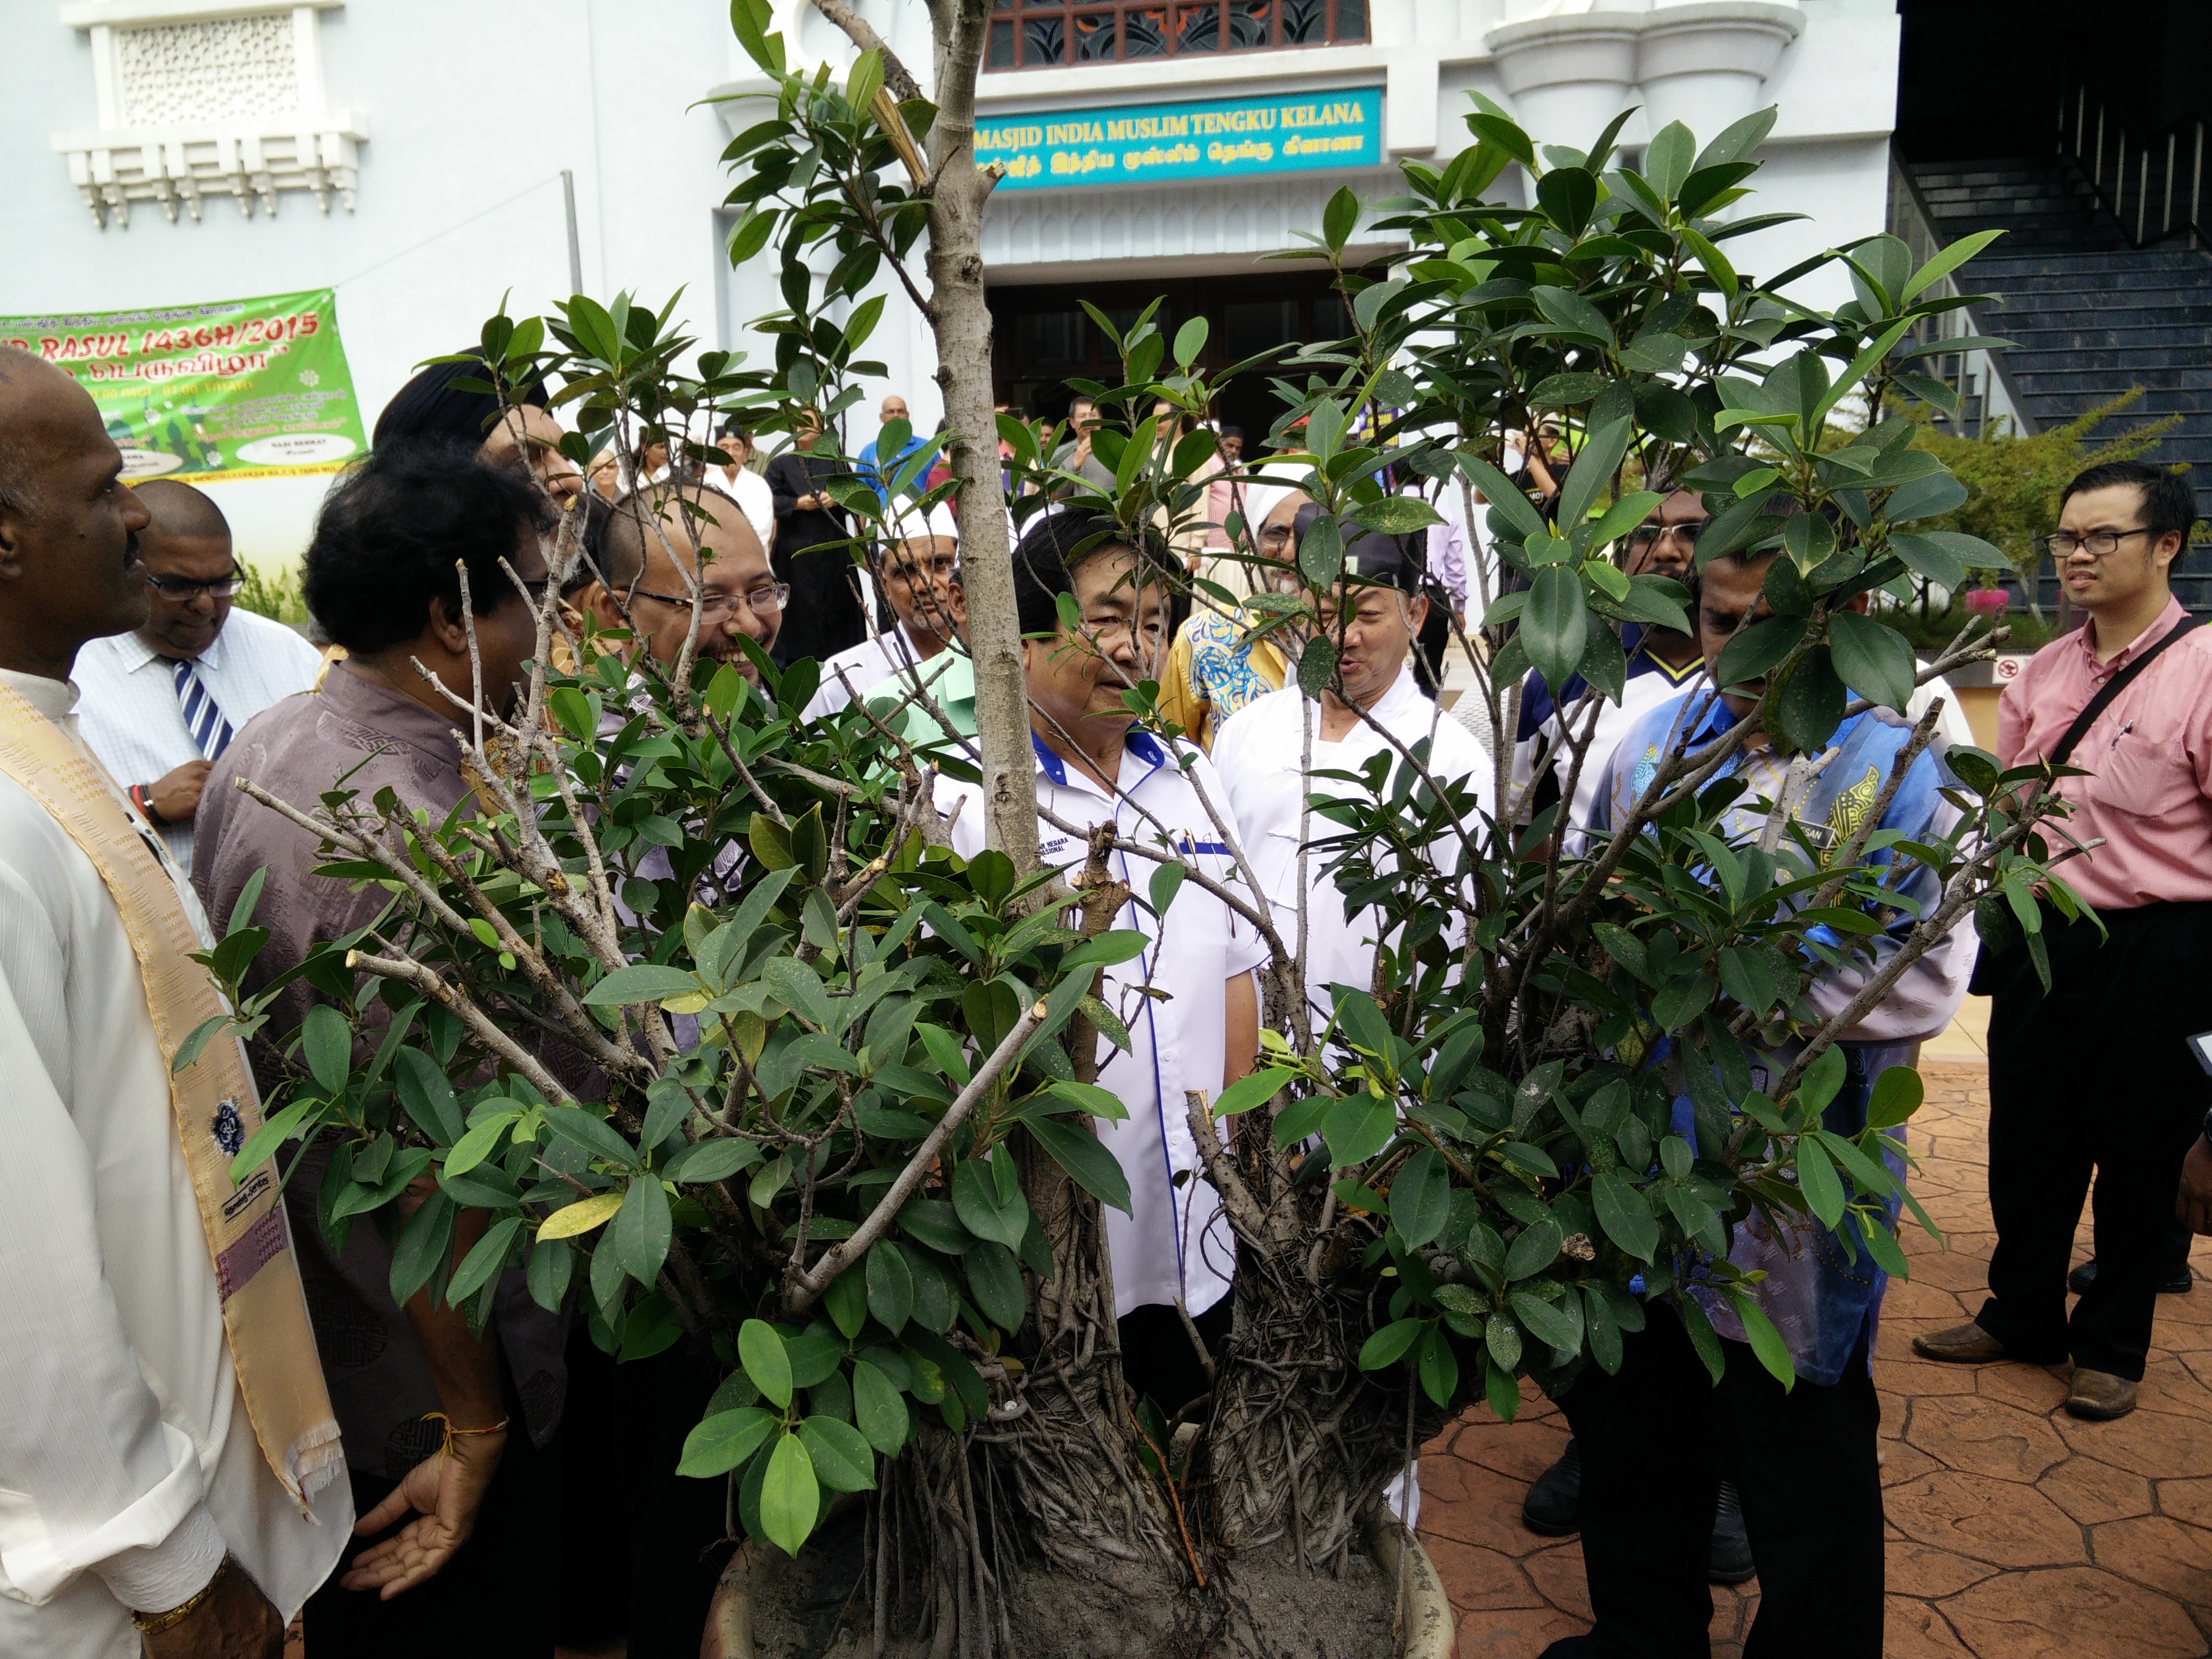 Honorable Minister Tan Sri Joseph Kurup at Tamil Masjid with the JKMPKA members planting a tree for the Masjid's WIHW 2015 program in Klang.jpg